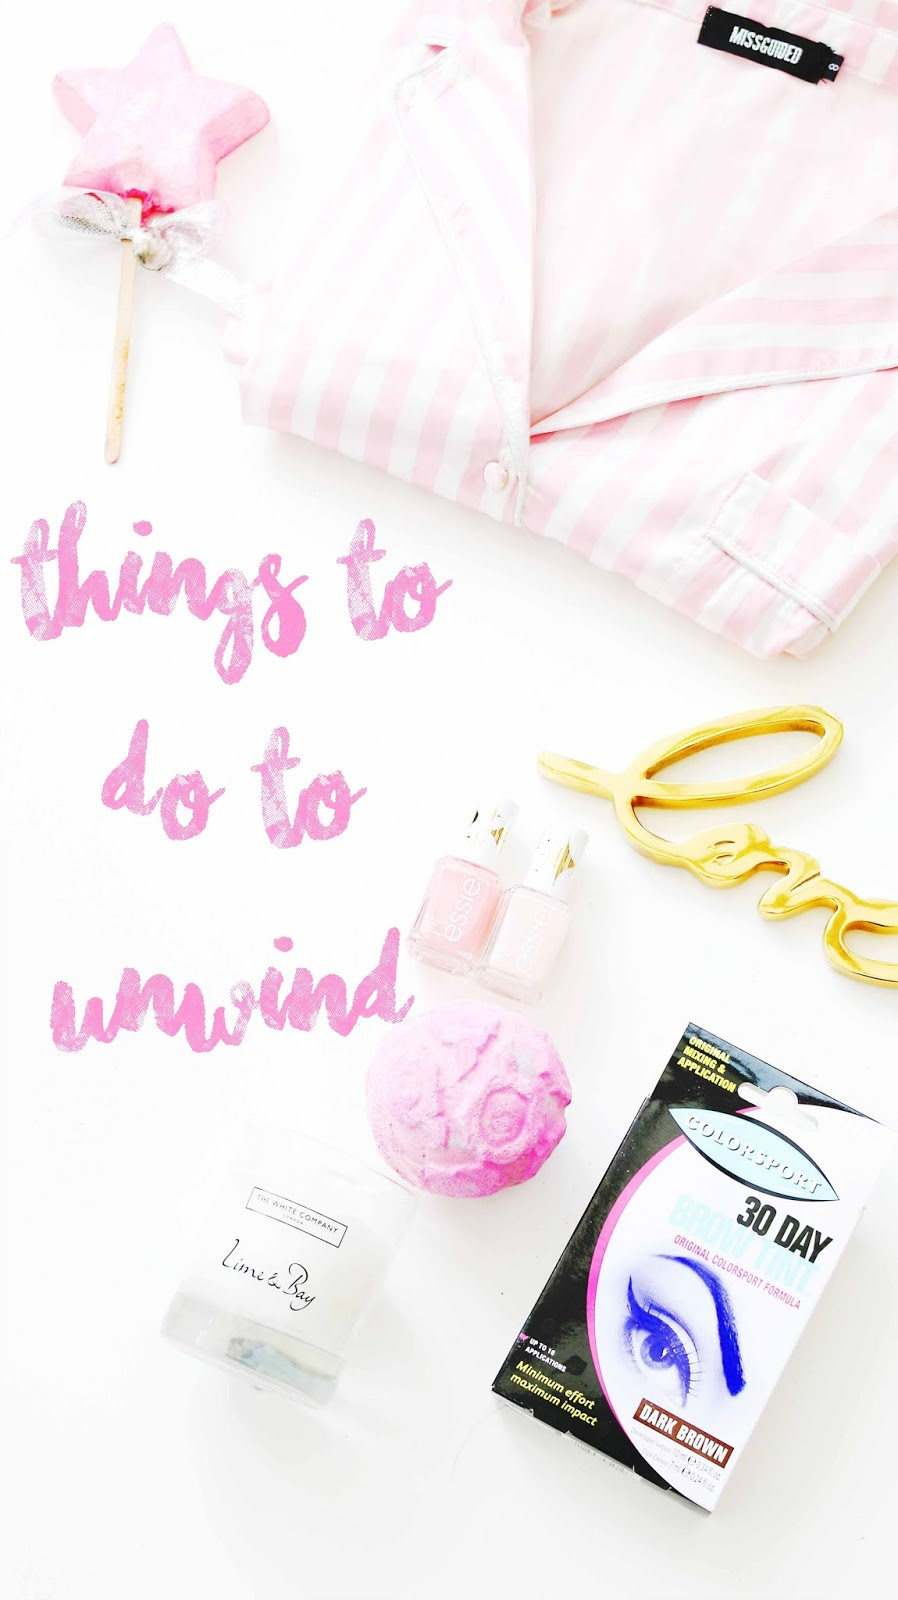 Beauty, Lifestyle, Pamper Evening Routine, Colorsport Brow Tint, Drugstore, Lush, Me Time, Things You Can Do To Unwind, Ways to relax